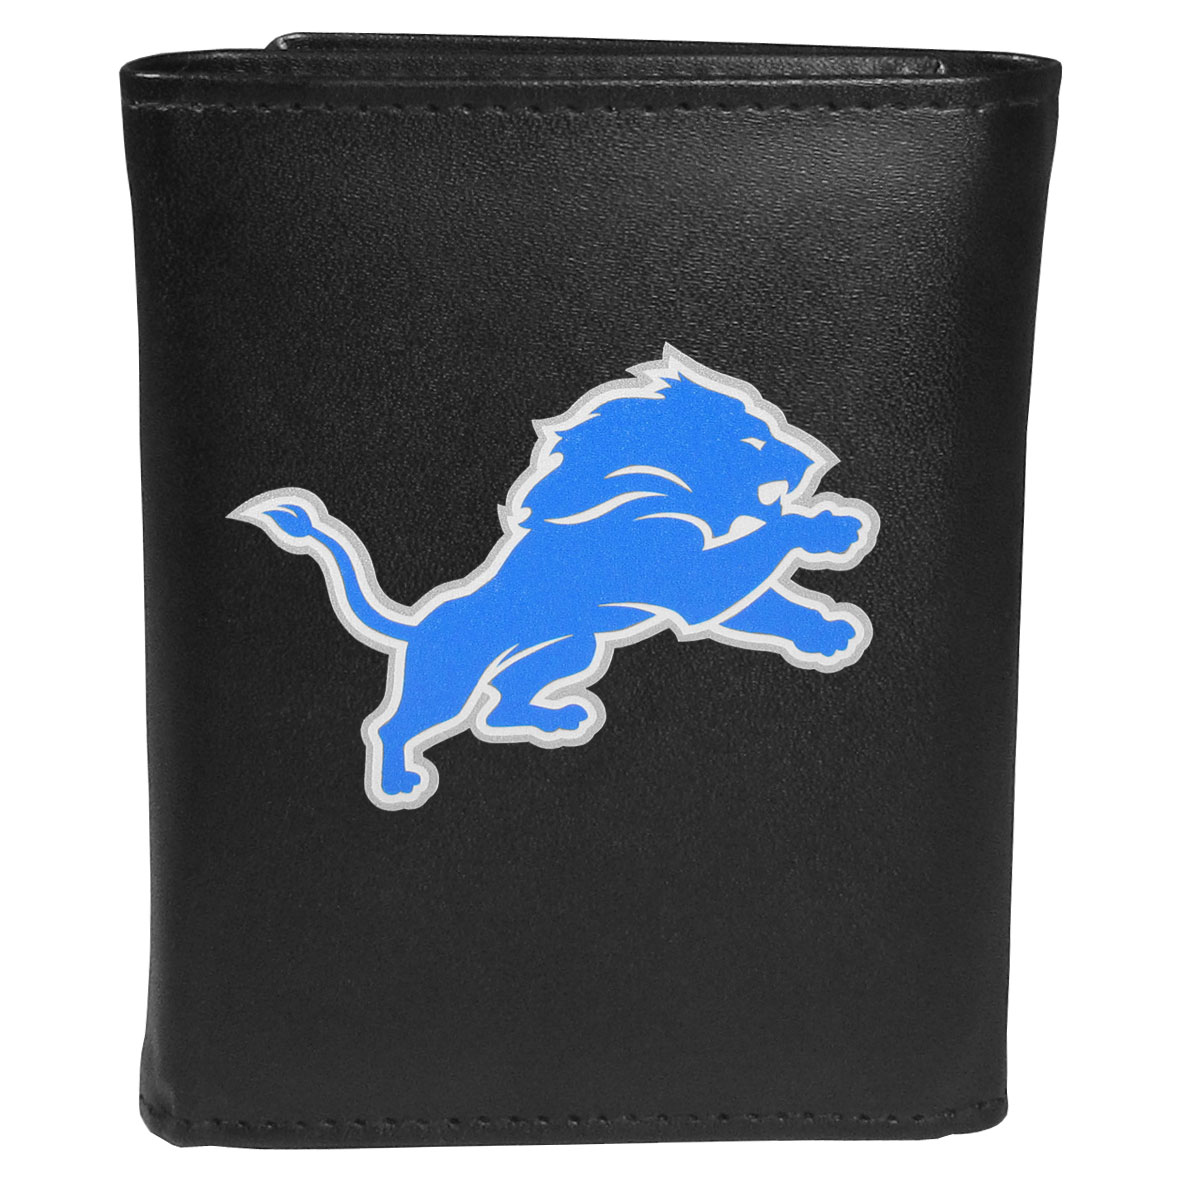 Detroit Lions Leather Tri-fold Wallet, Large Logo - Our classic fine leather tri-fold wallet is meticulously crafted with genuine leather that will age beautifully so you will have a quality wallet for years to come. This is fan apparel at its finest. The wallet is packed with organizational  features; lots of credit card slots, large billfold pocket, and a window ID slot. The front of the wallet features an extra large Detroit Lions printed logo.